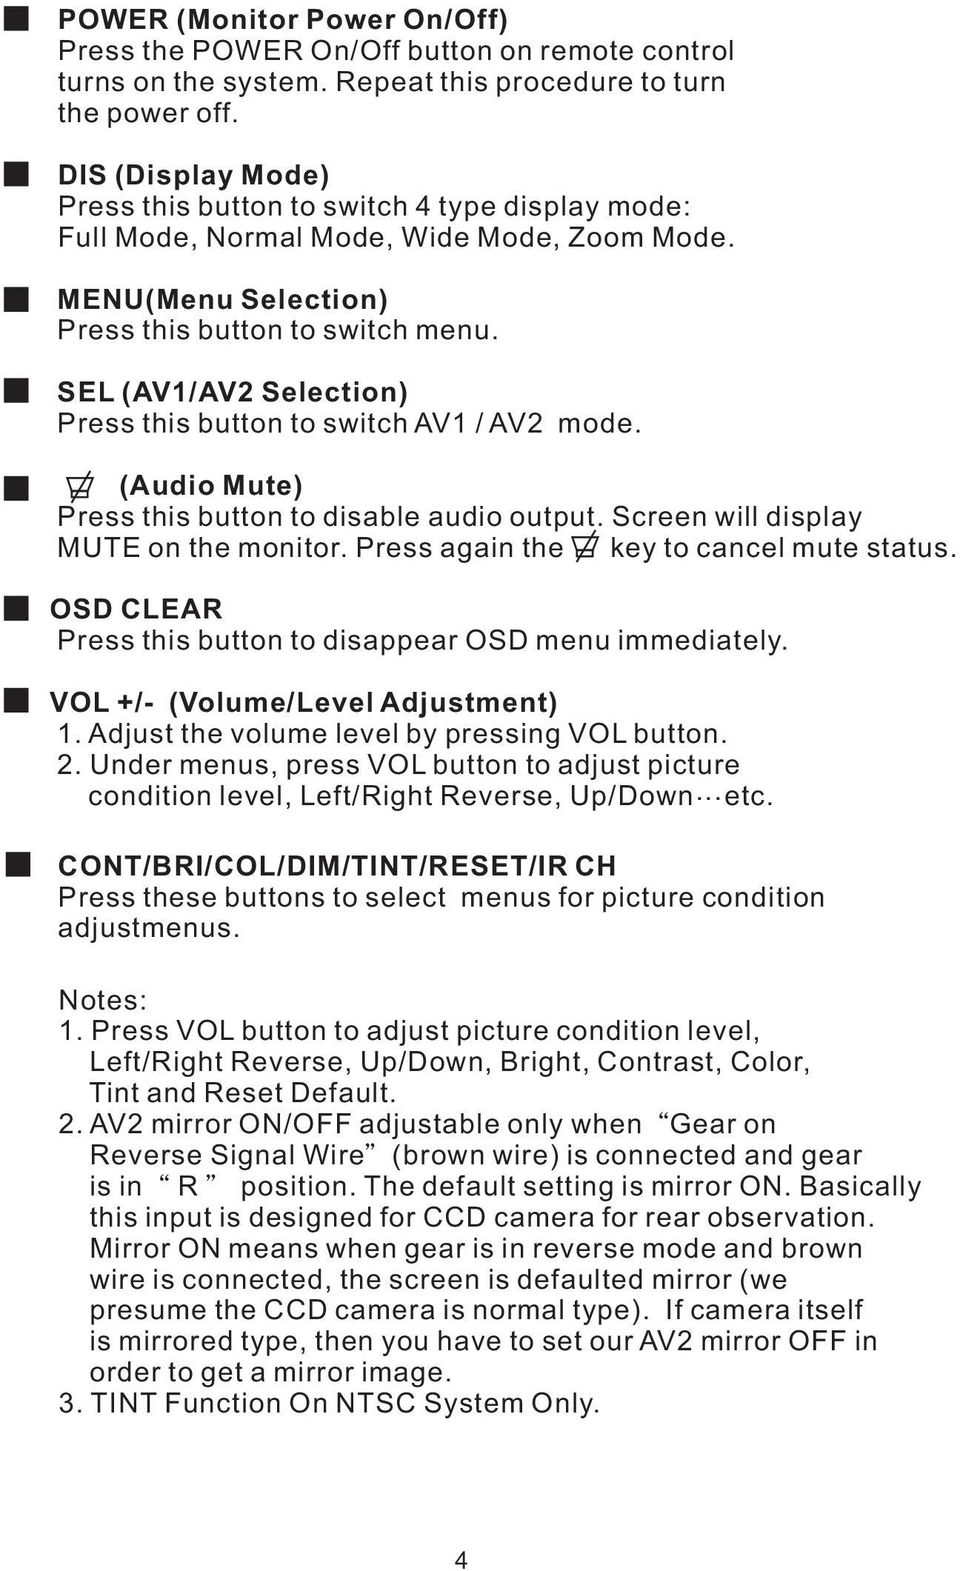 SEL (AV1/AV2 Selection) Press this button to switch AV1 / AV2 mode. (Audio Mute) Press this button to disable audio output. Screen will display MUTE on the monitor.